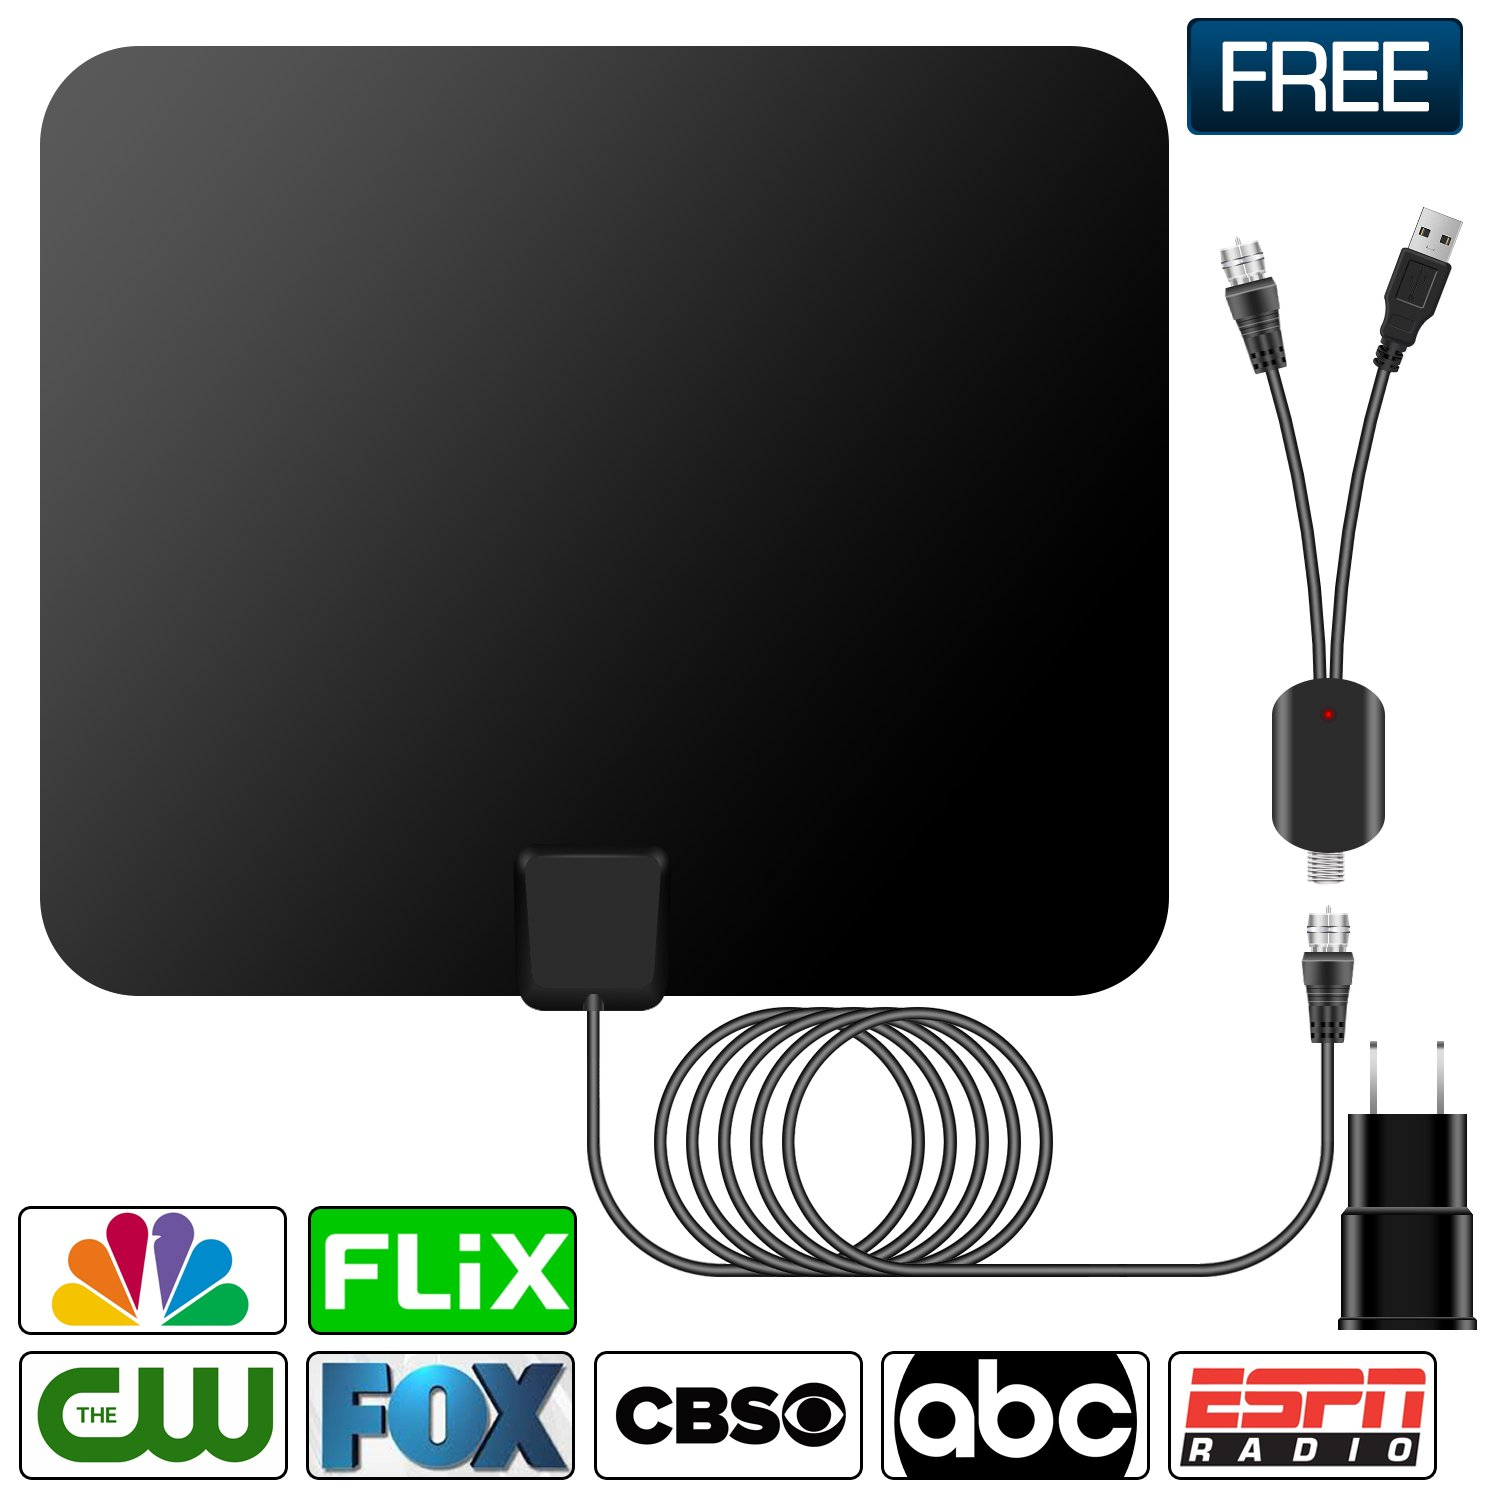 HDTV Antenna,Indoor Amplified TV Antenna 50 to 70 Miles Range with Detachable Amplifier Signal Booster and 16 Feet Coaxial Cable (Black)